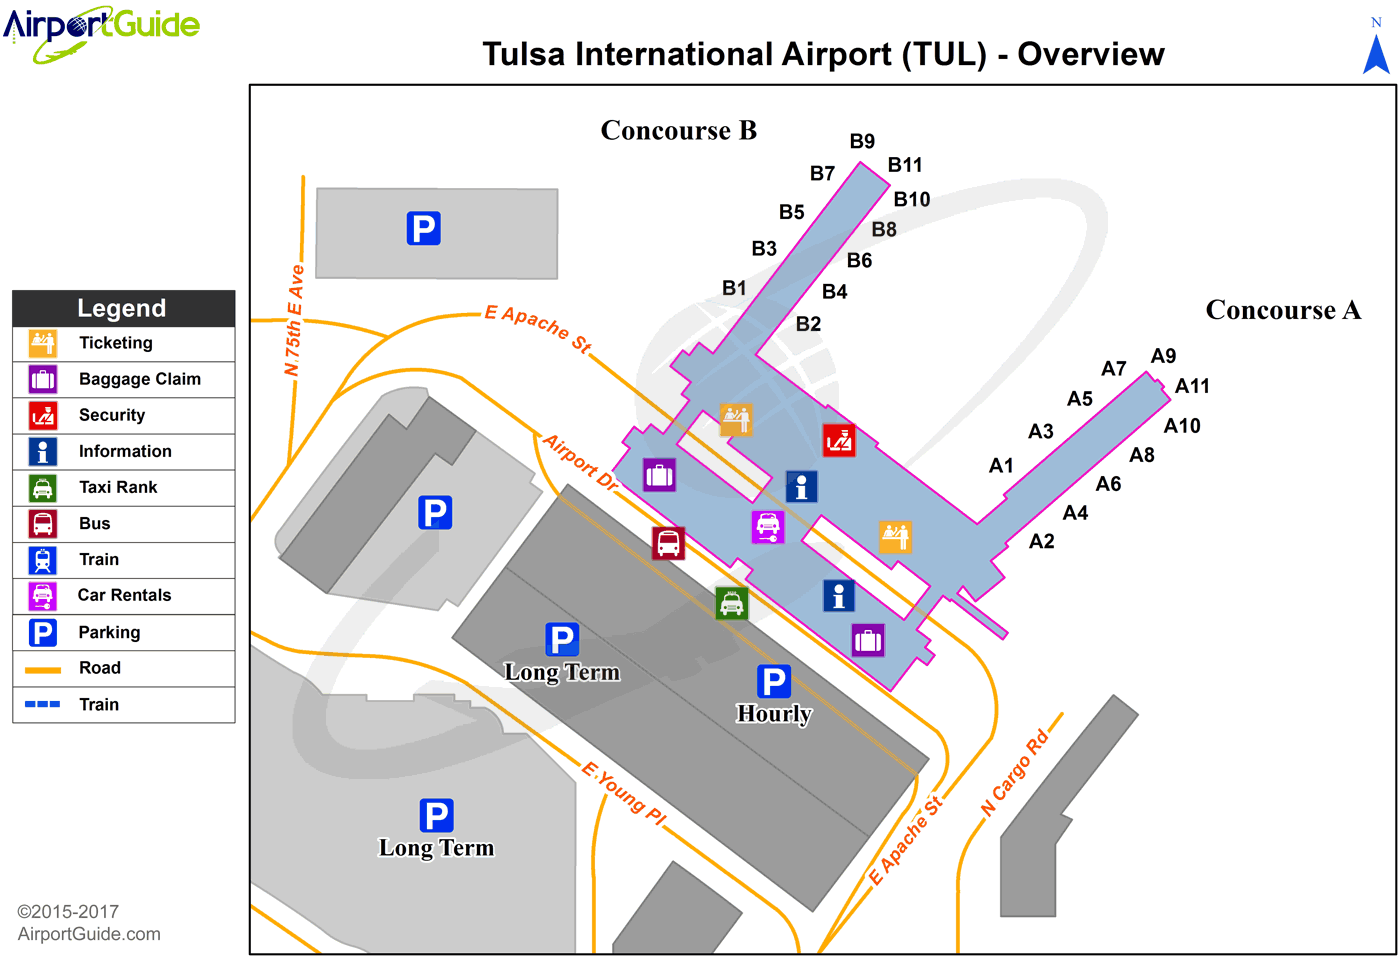 Tulsa - Tulsa International (TUL) Airport Terminal Map - Overview